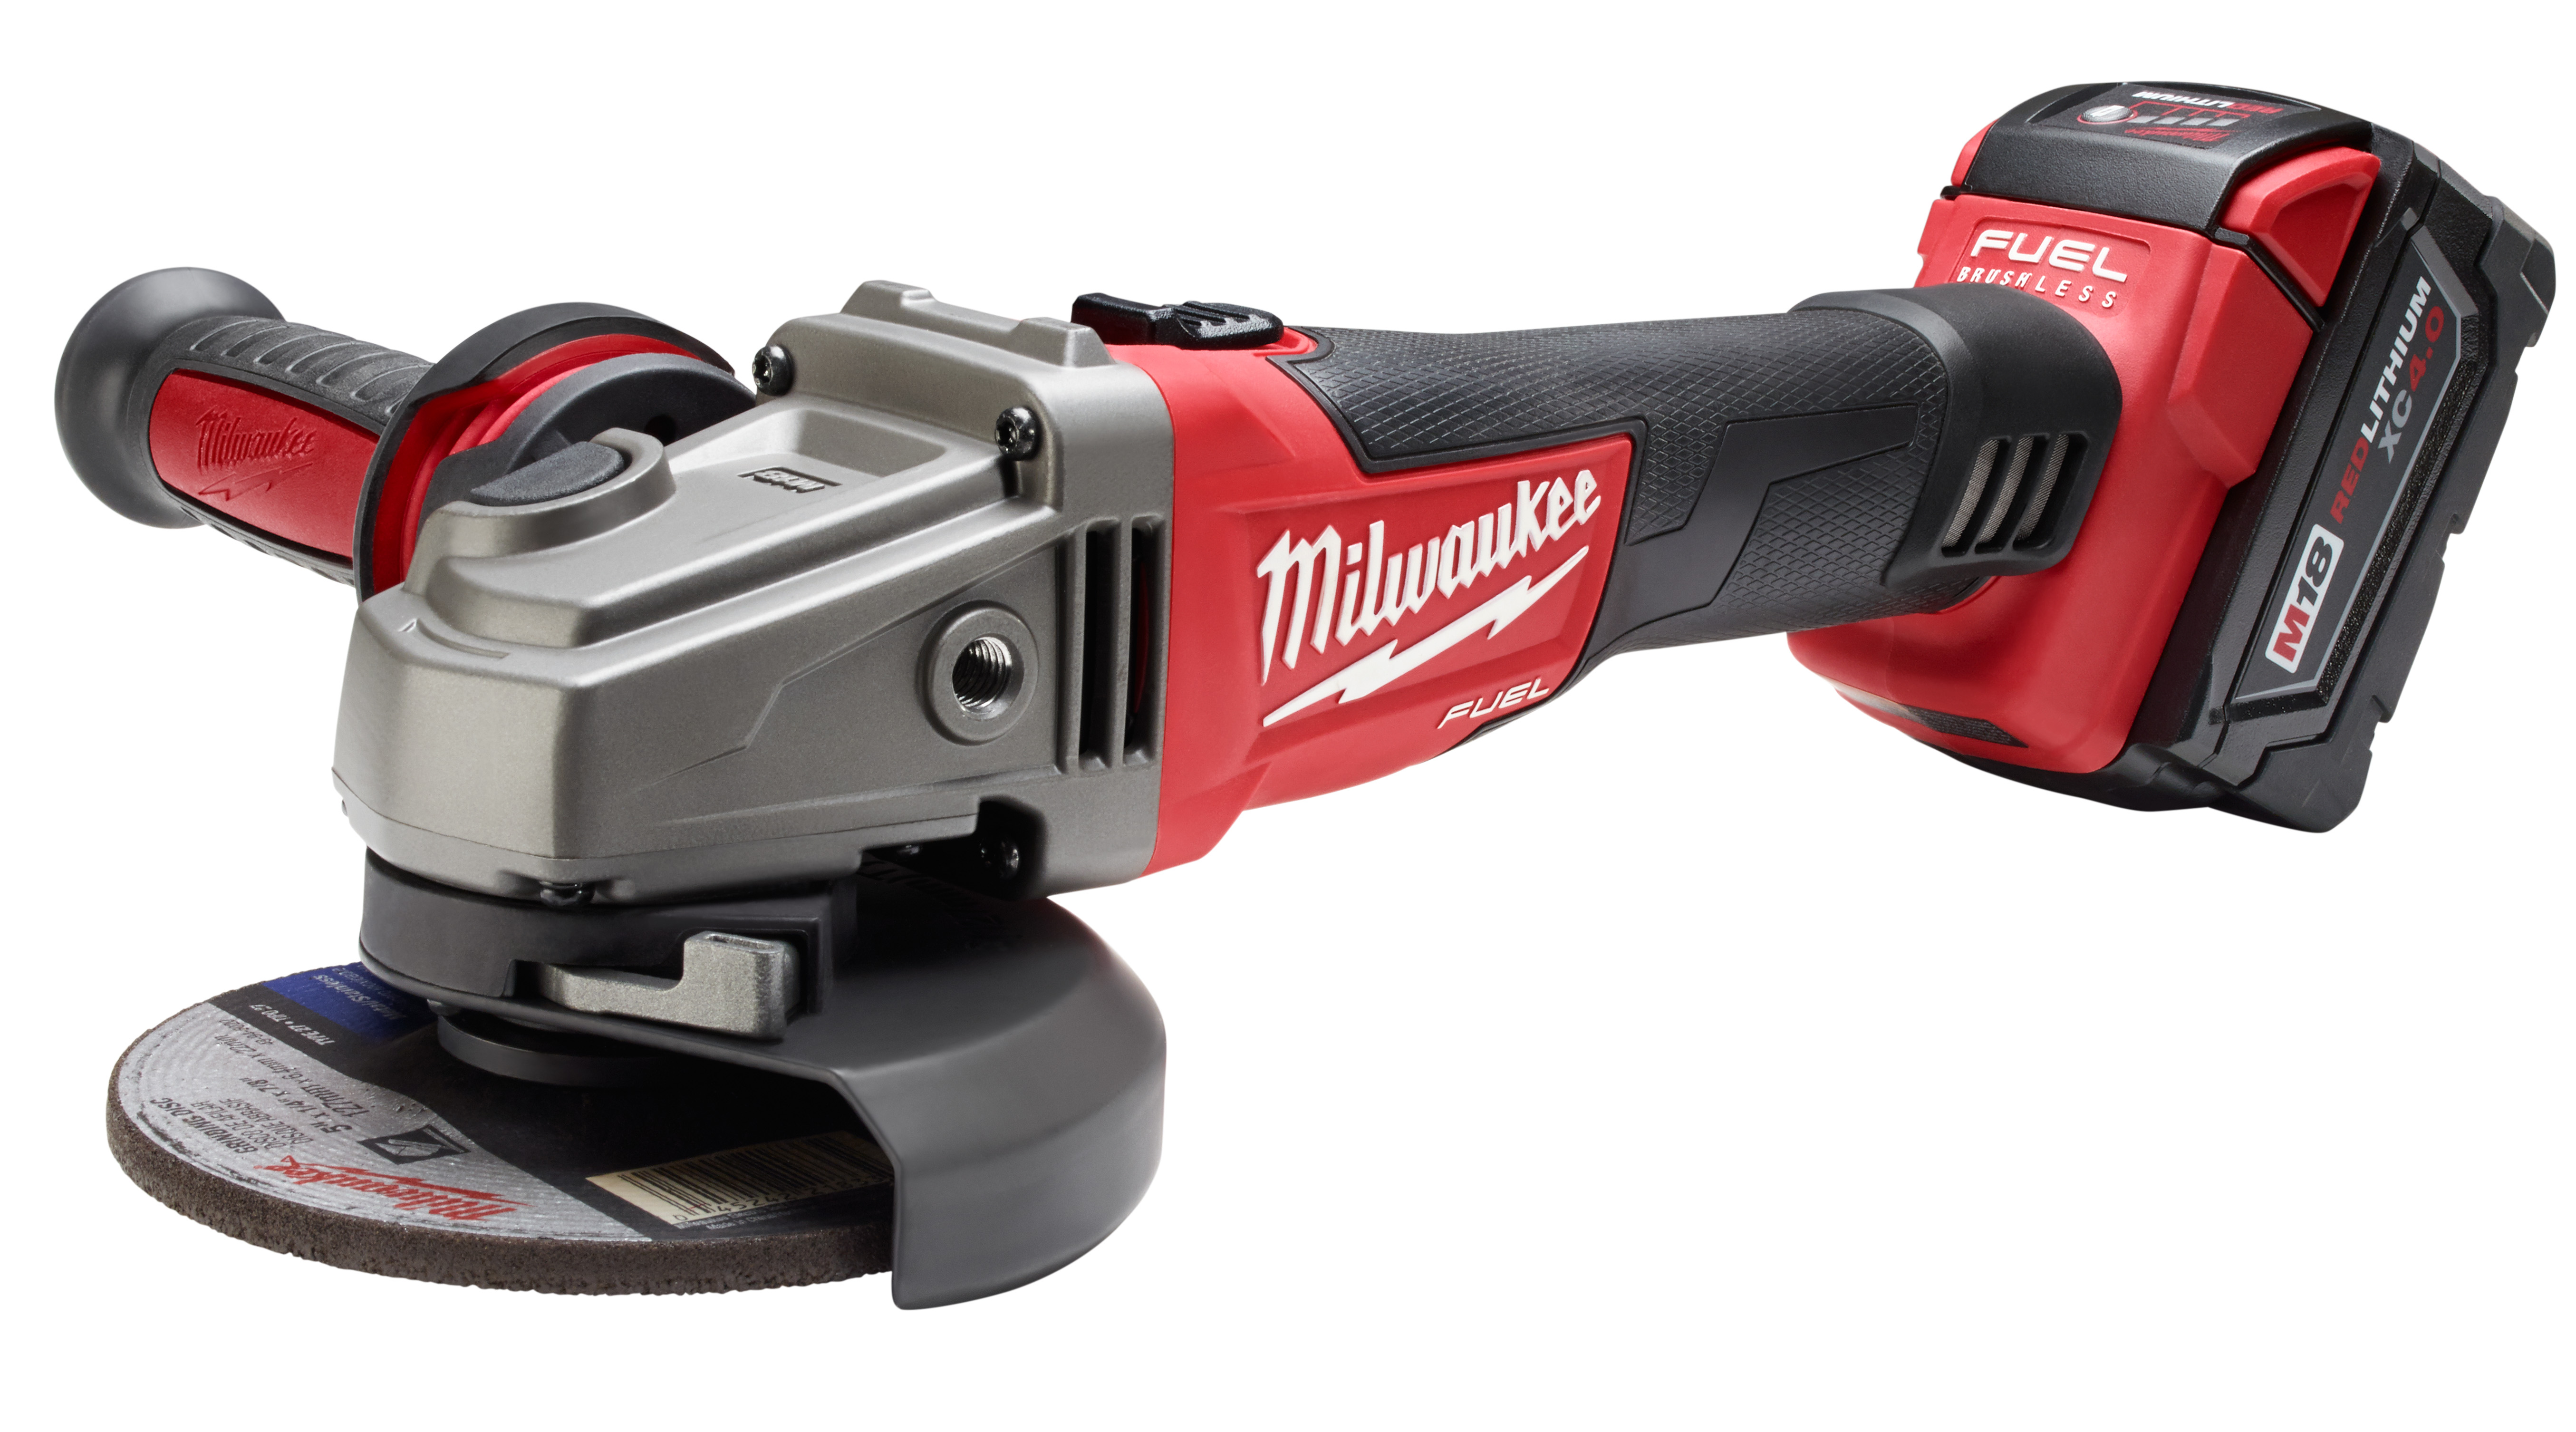 Milwaukee® M18™ FUEL™ 2781-21 Cordless Angle Grinder Kit, 5 in Dia Wheel, 5/8-11 Arbor/Shank, 18 VDC, Lithium-Ion Battery, 1 Battery, Slide with Lock-On Switch